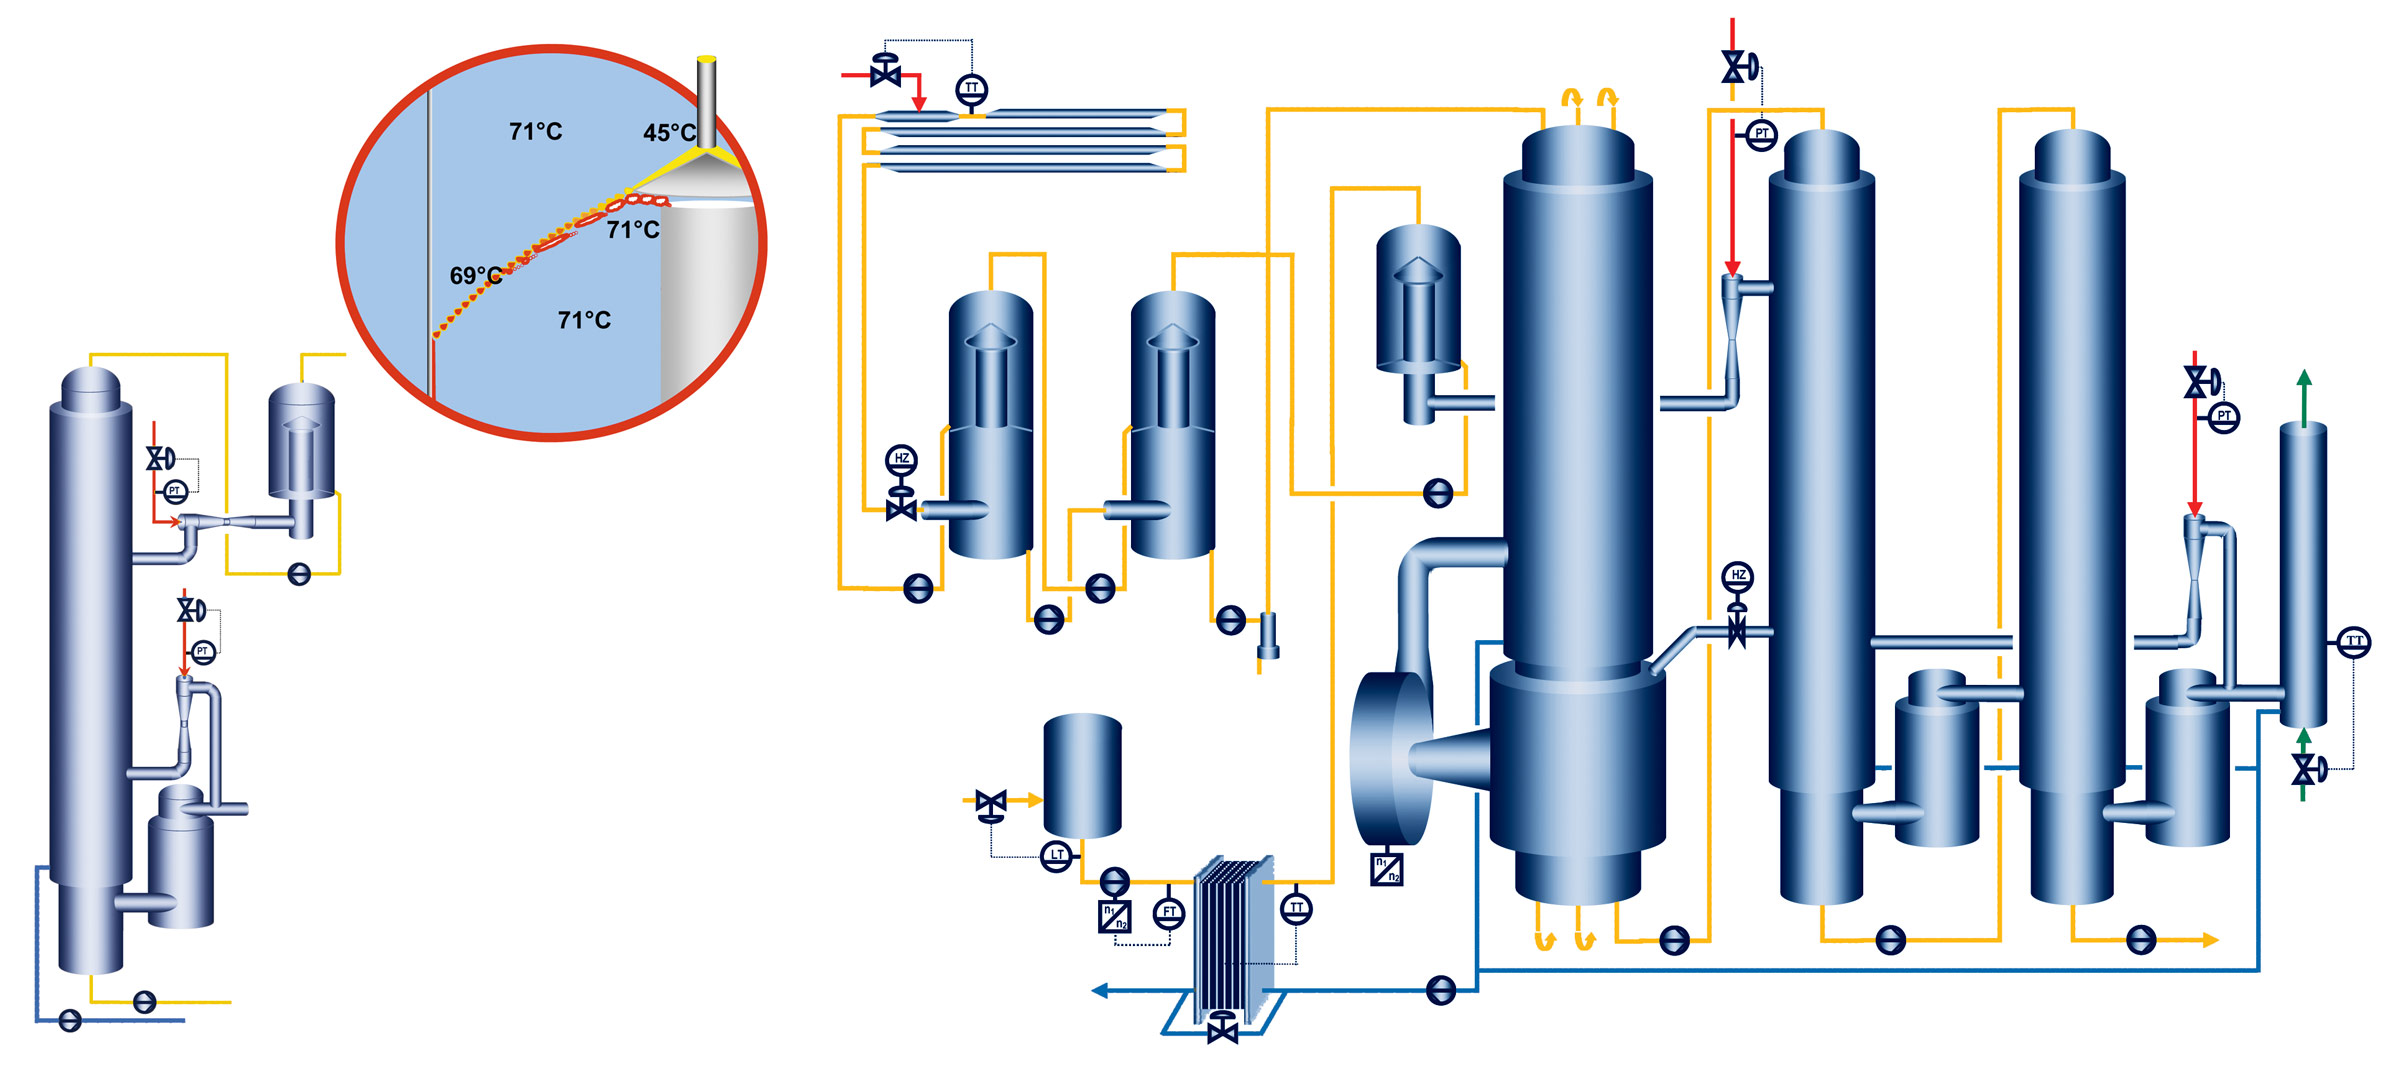 Evaporation On To Enlarge The Diagram Operating Principle Of Liquid Ring Pumps Direct Contact Regenerative Preheater